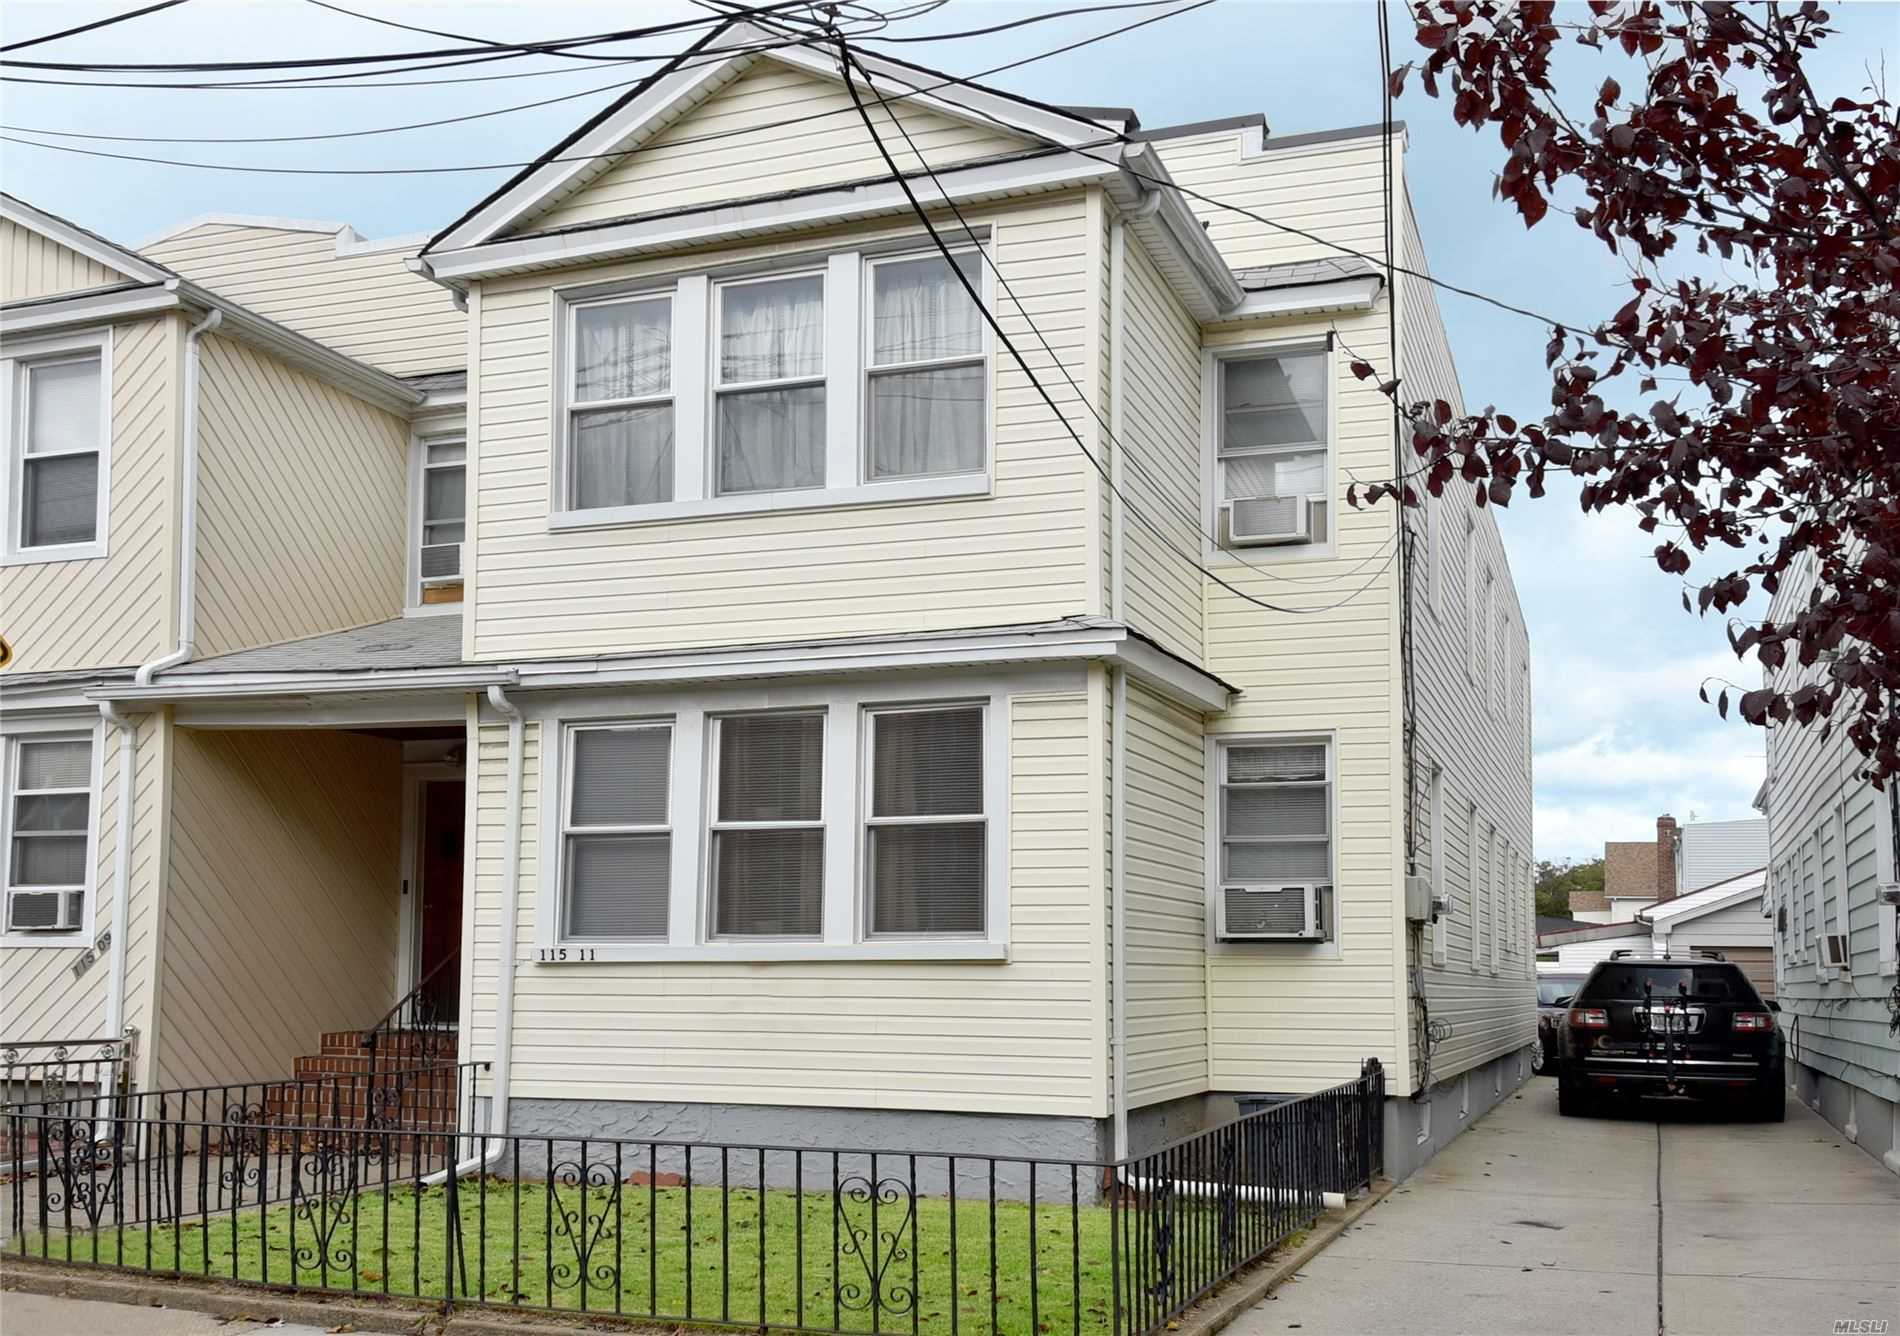 Property for sale at 115-11 95th Avenue, Richmond Hill NY 11419, Richmond Hill,  New York 11419